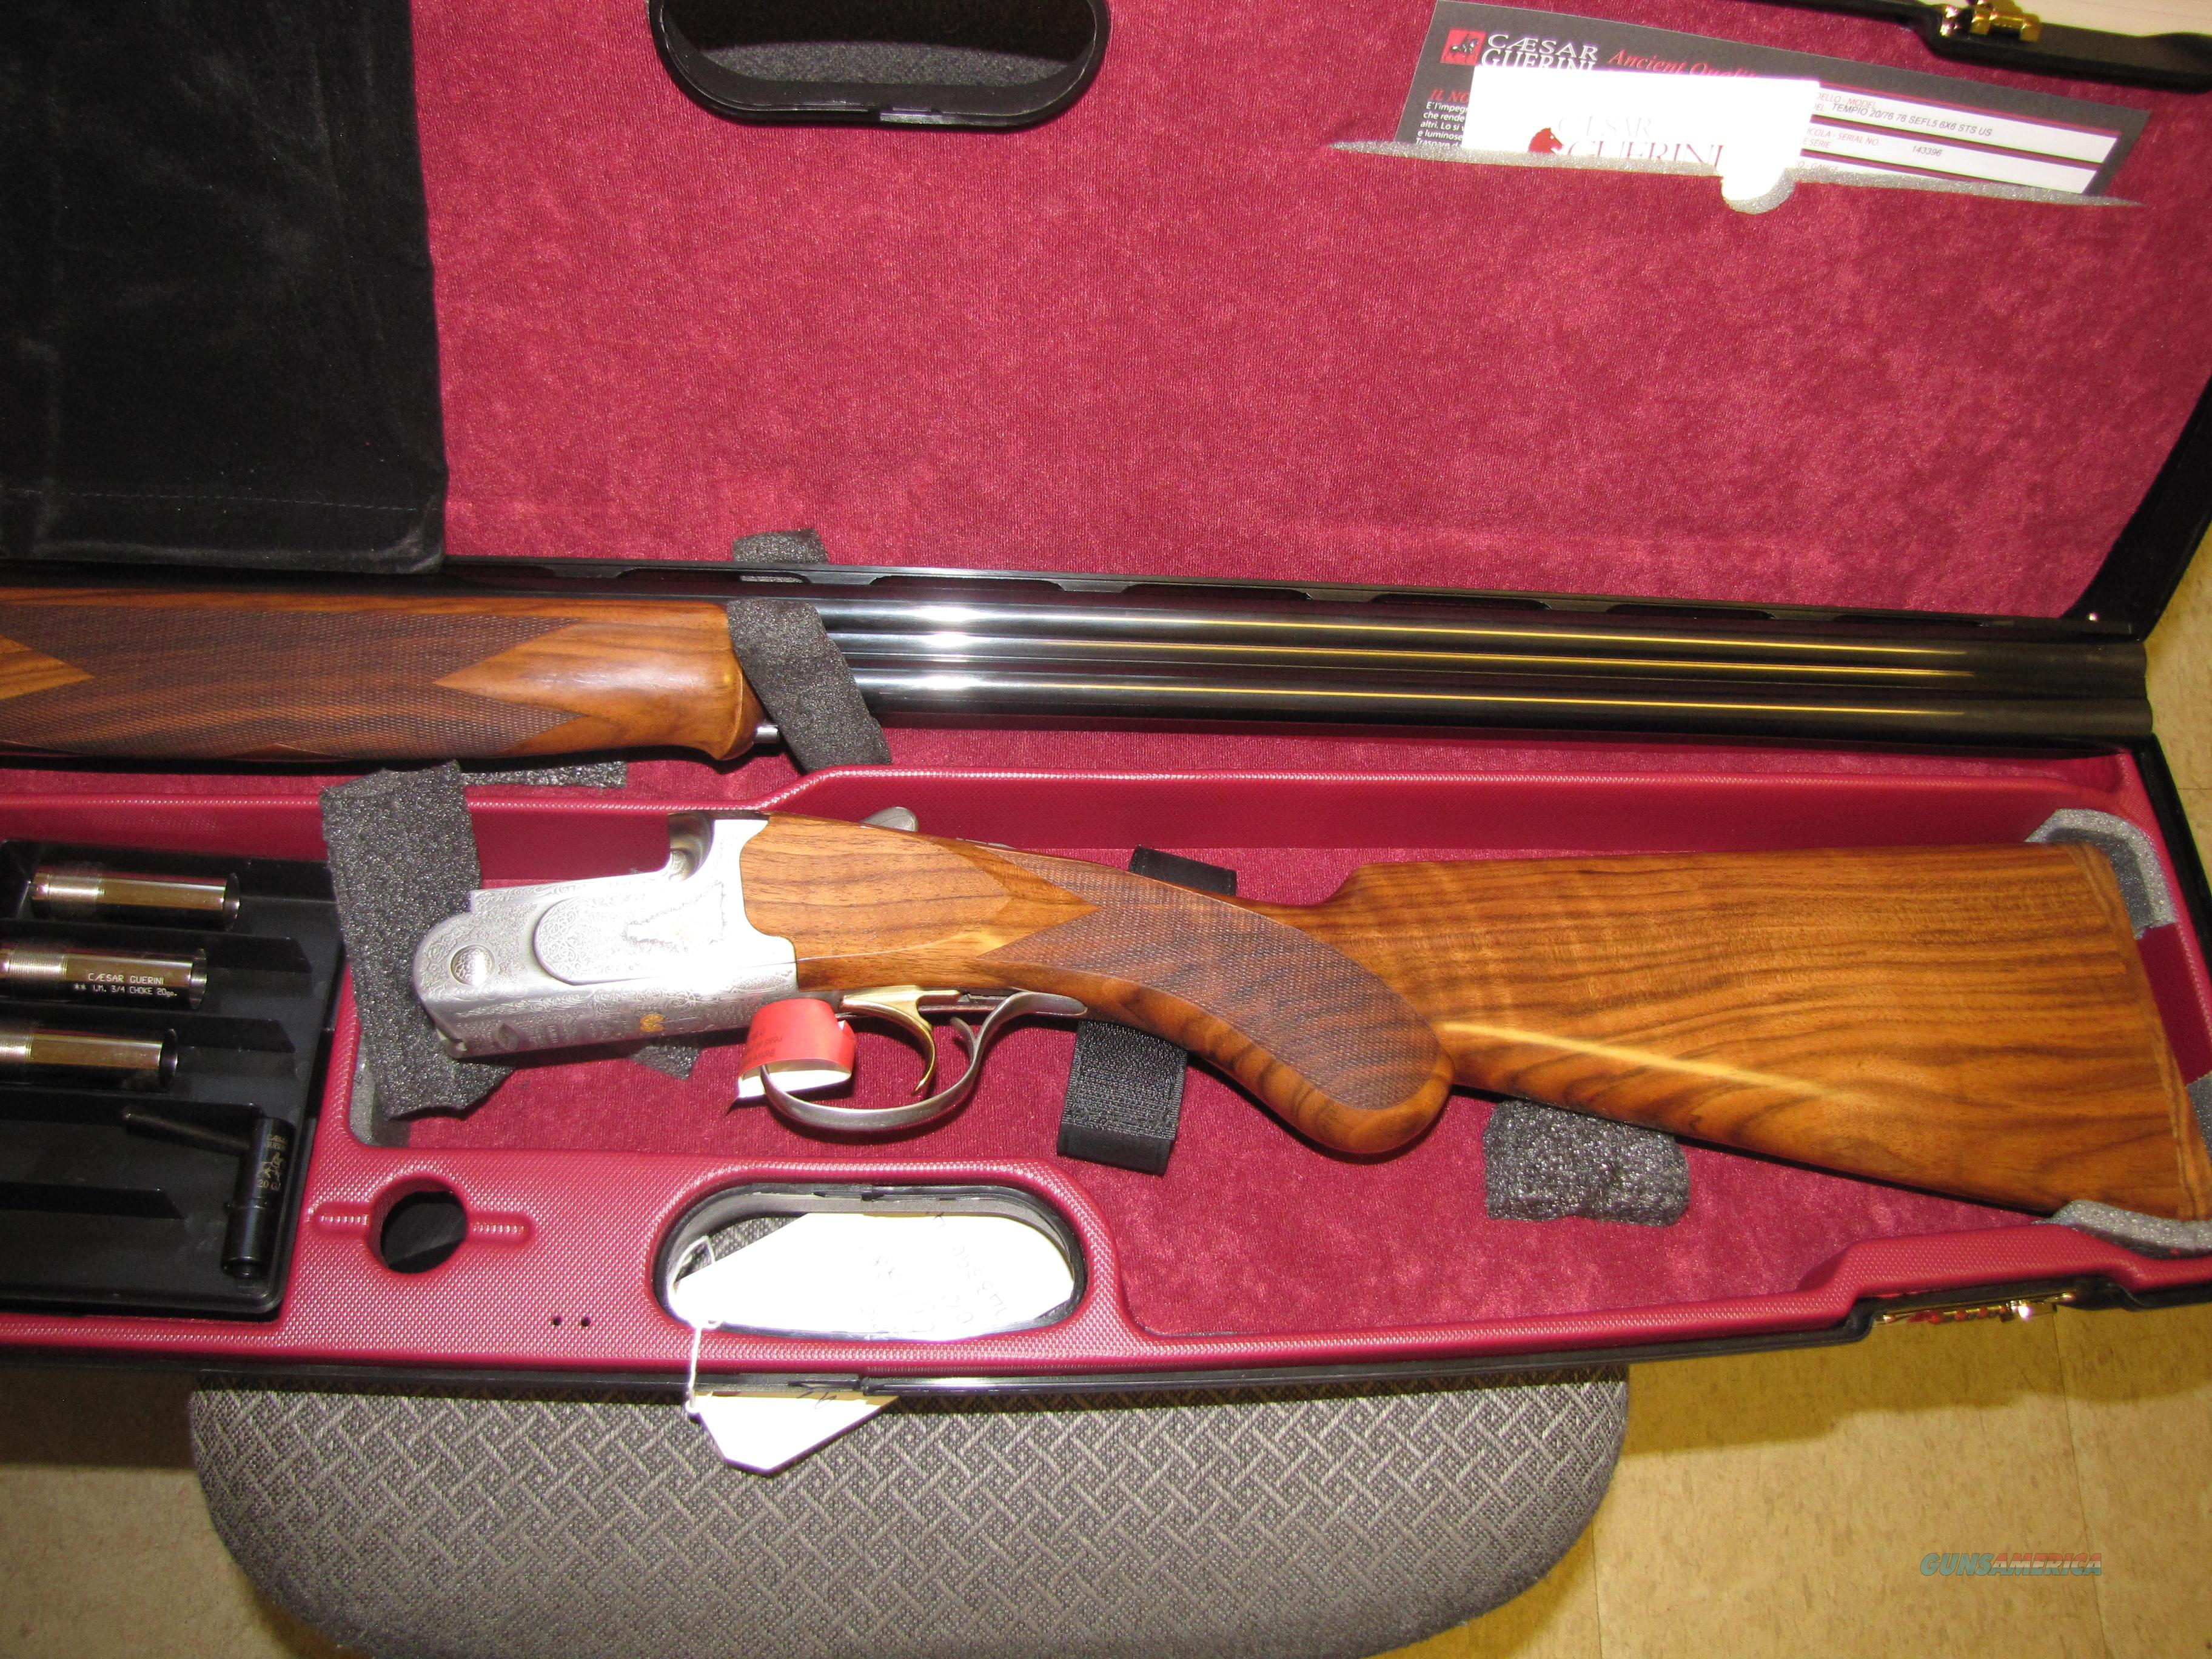 NIB Guerini Tempio 20 gauge with 28 inch ou barrels field model  Guns > Shotguns > Guerini Shotuns